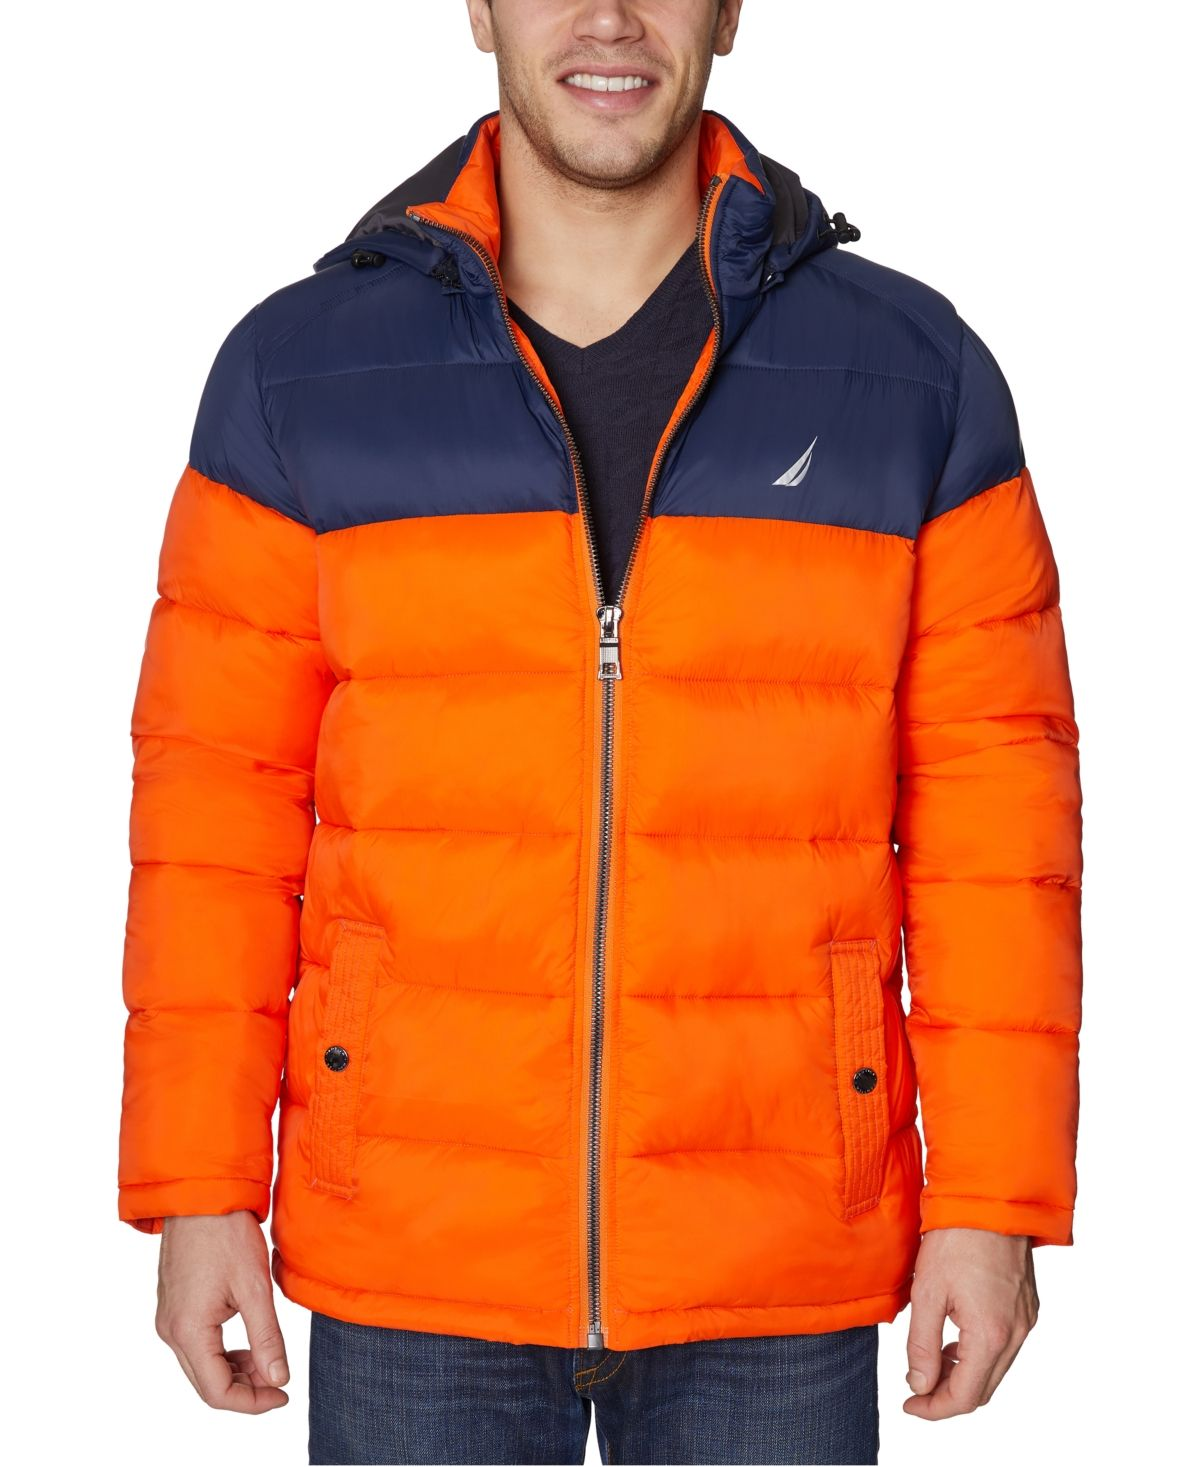 Nautica Men's WaterResistant Puffer Jacket with Removable